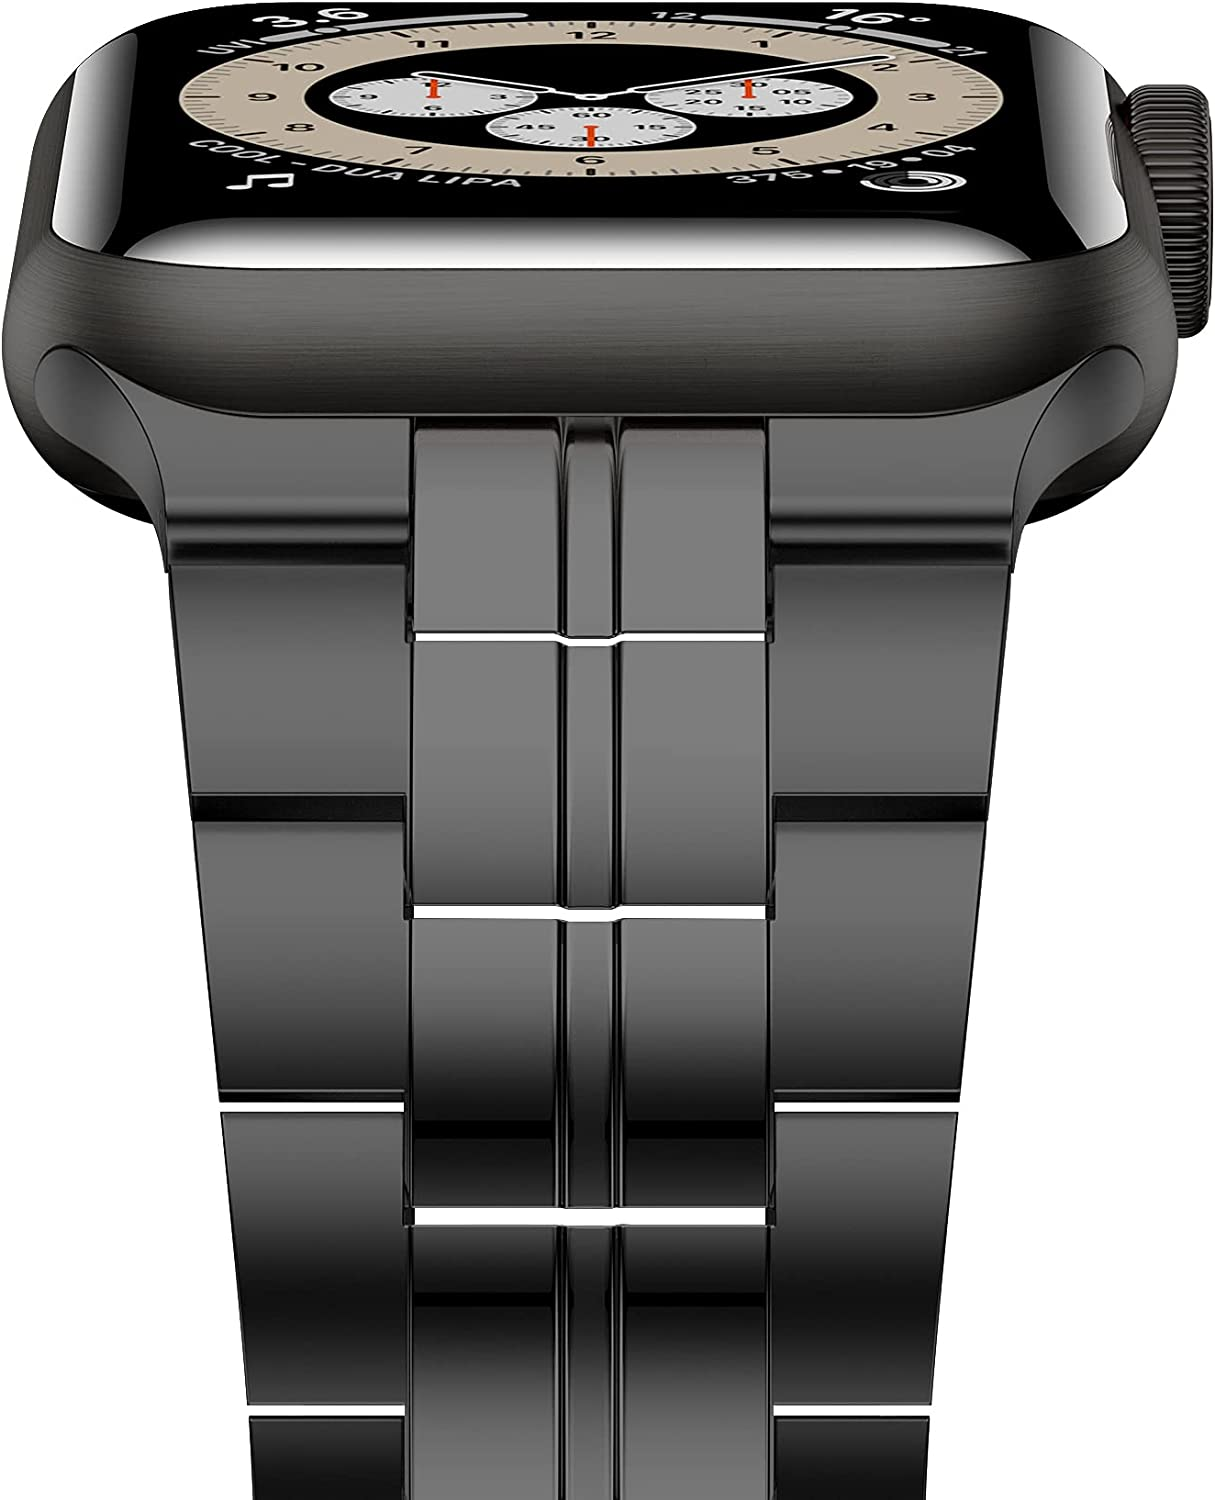 iiteeology Compatible with Apple Watch Band 44mm 42mm, Titanium Steel Metal Strap for Men with Double Button Clasp for iWatch SE Series 6 5 4 3 2 1, Black, 42mm/44mm